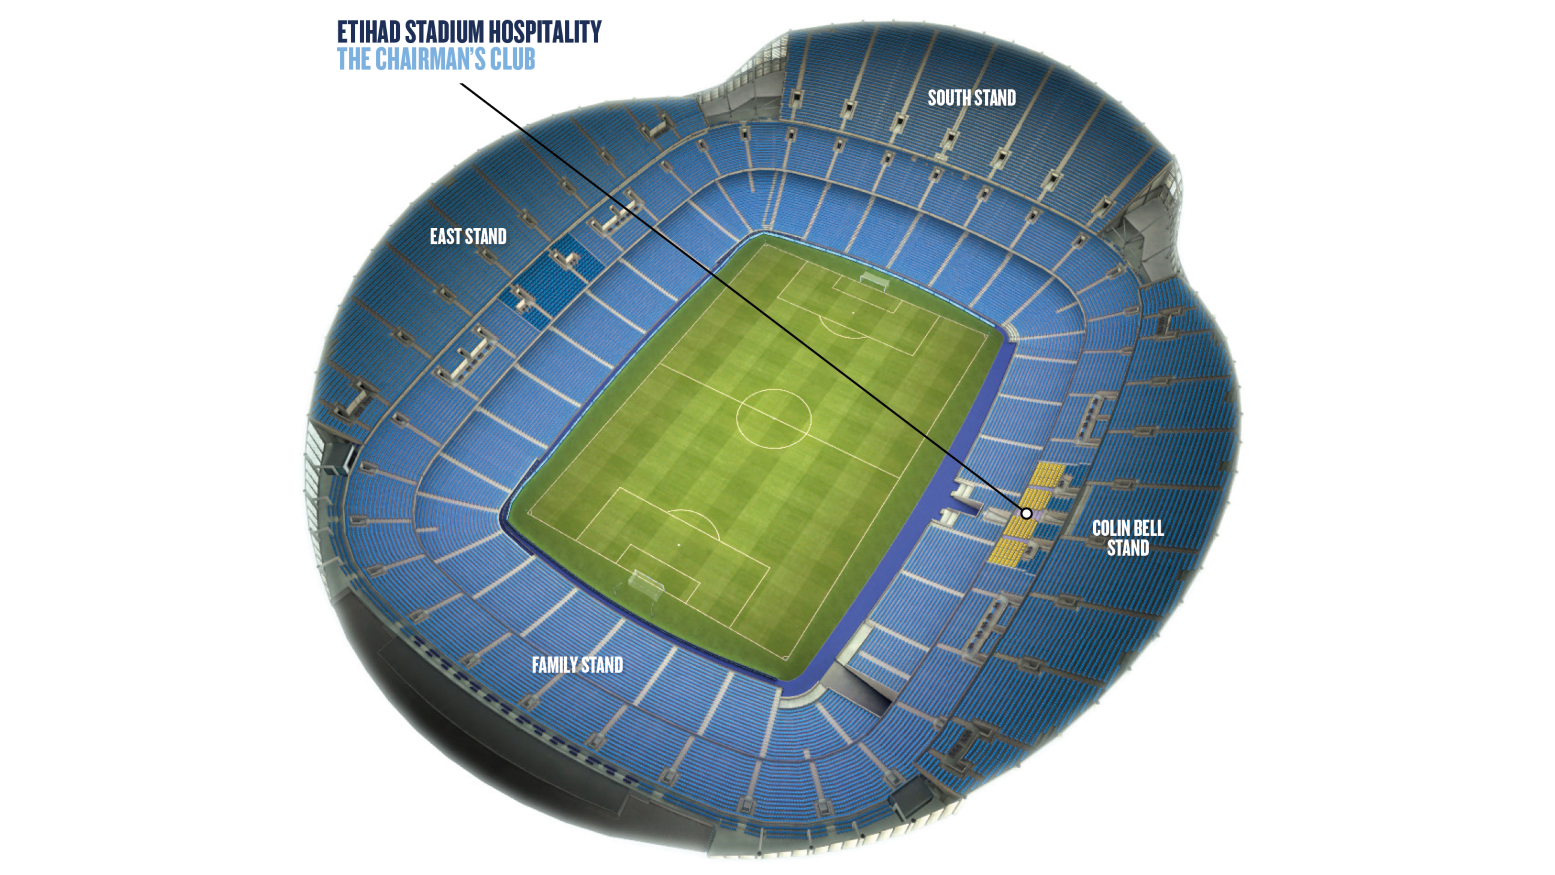 Chairman's Club stadium plan